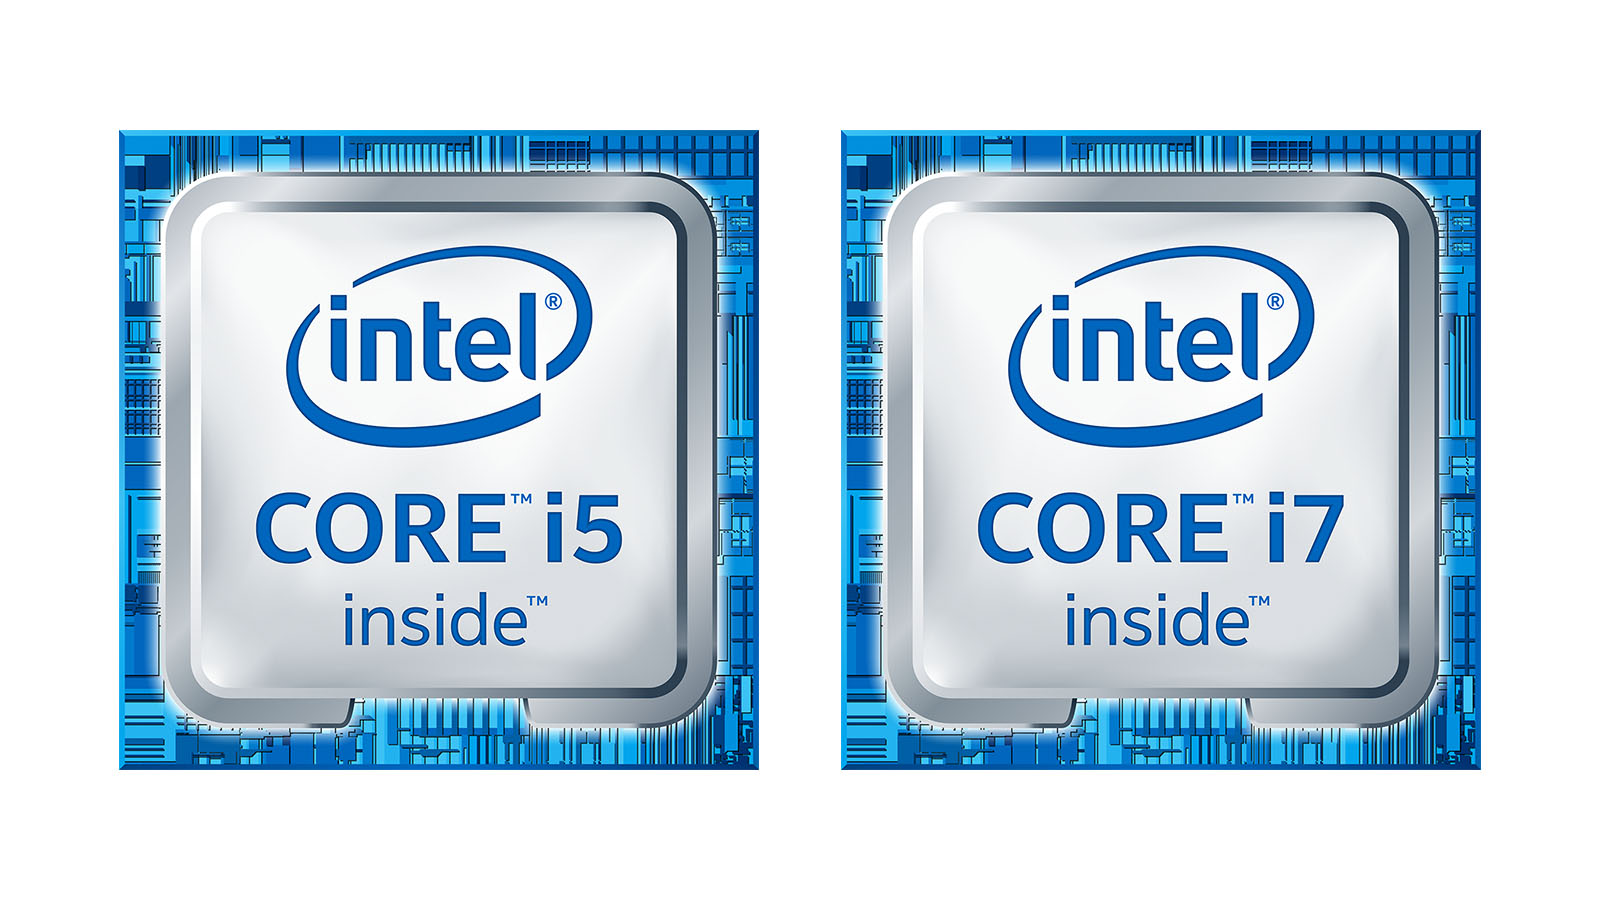 Intel Skylake Core i5 or i7